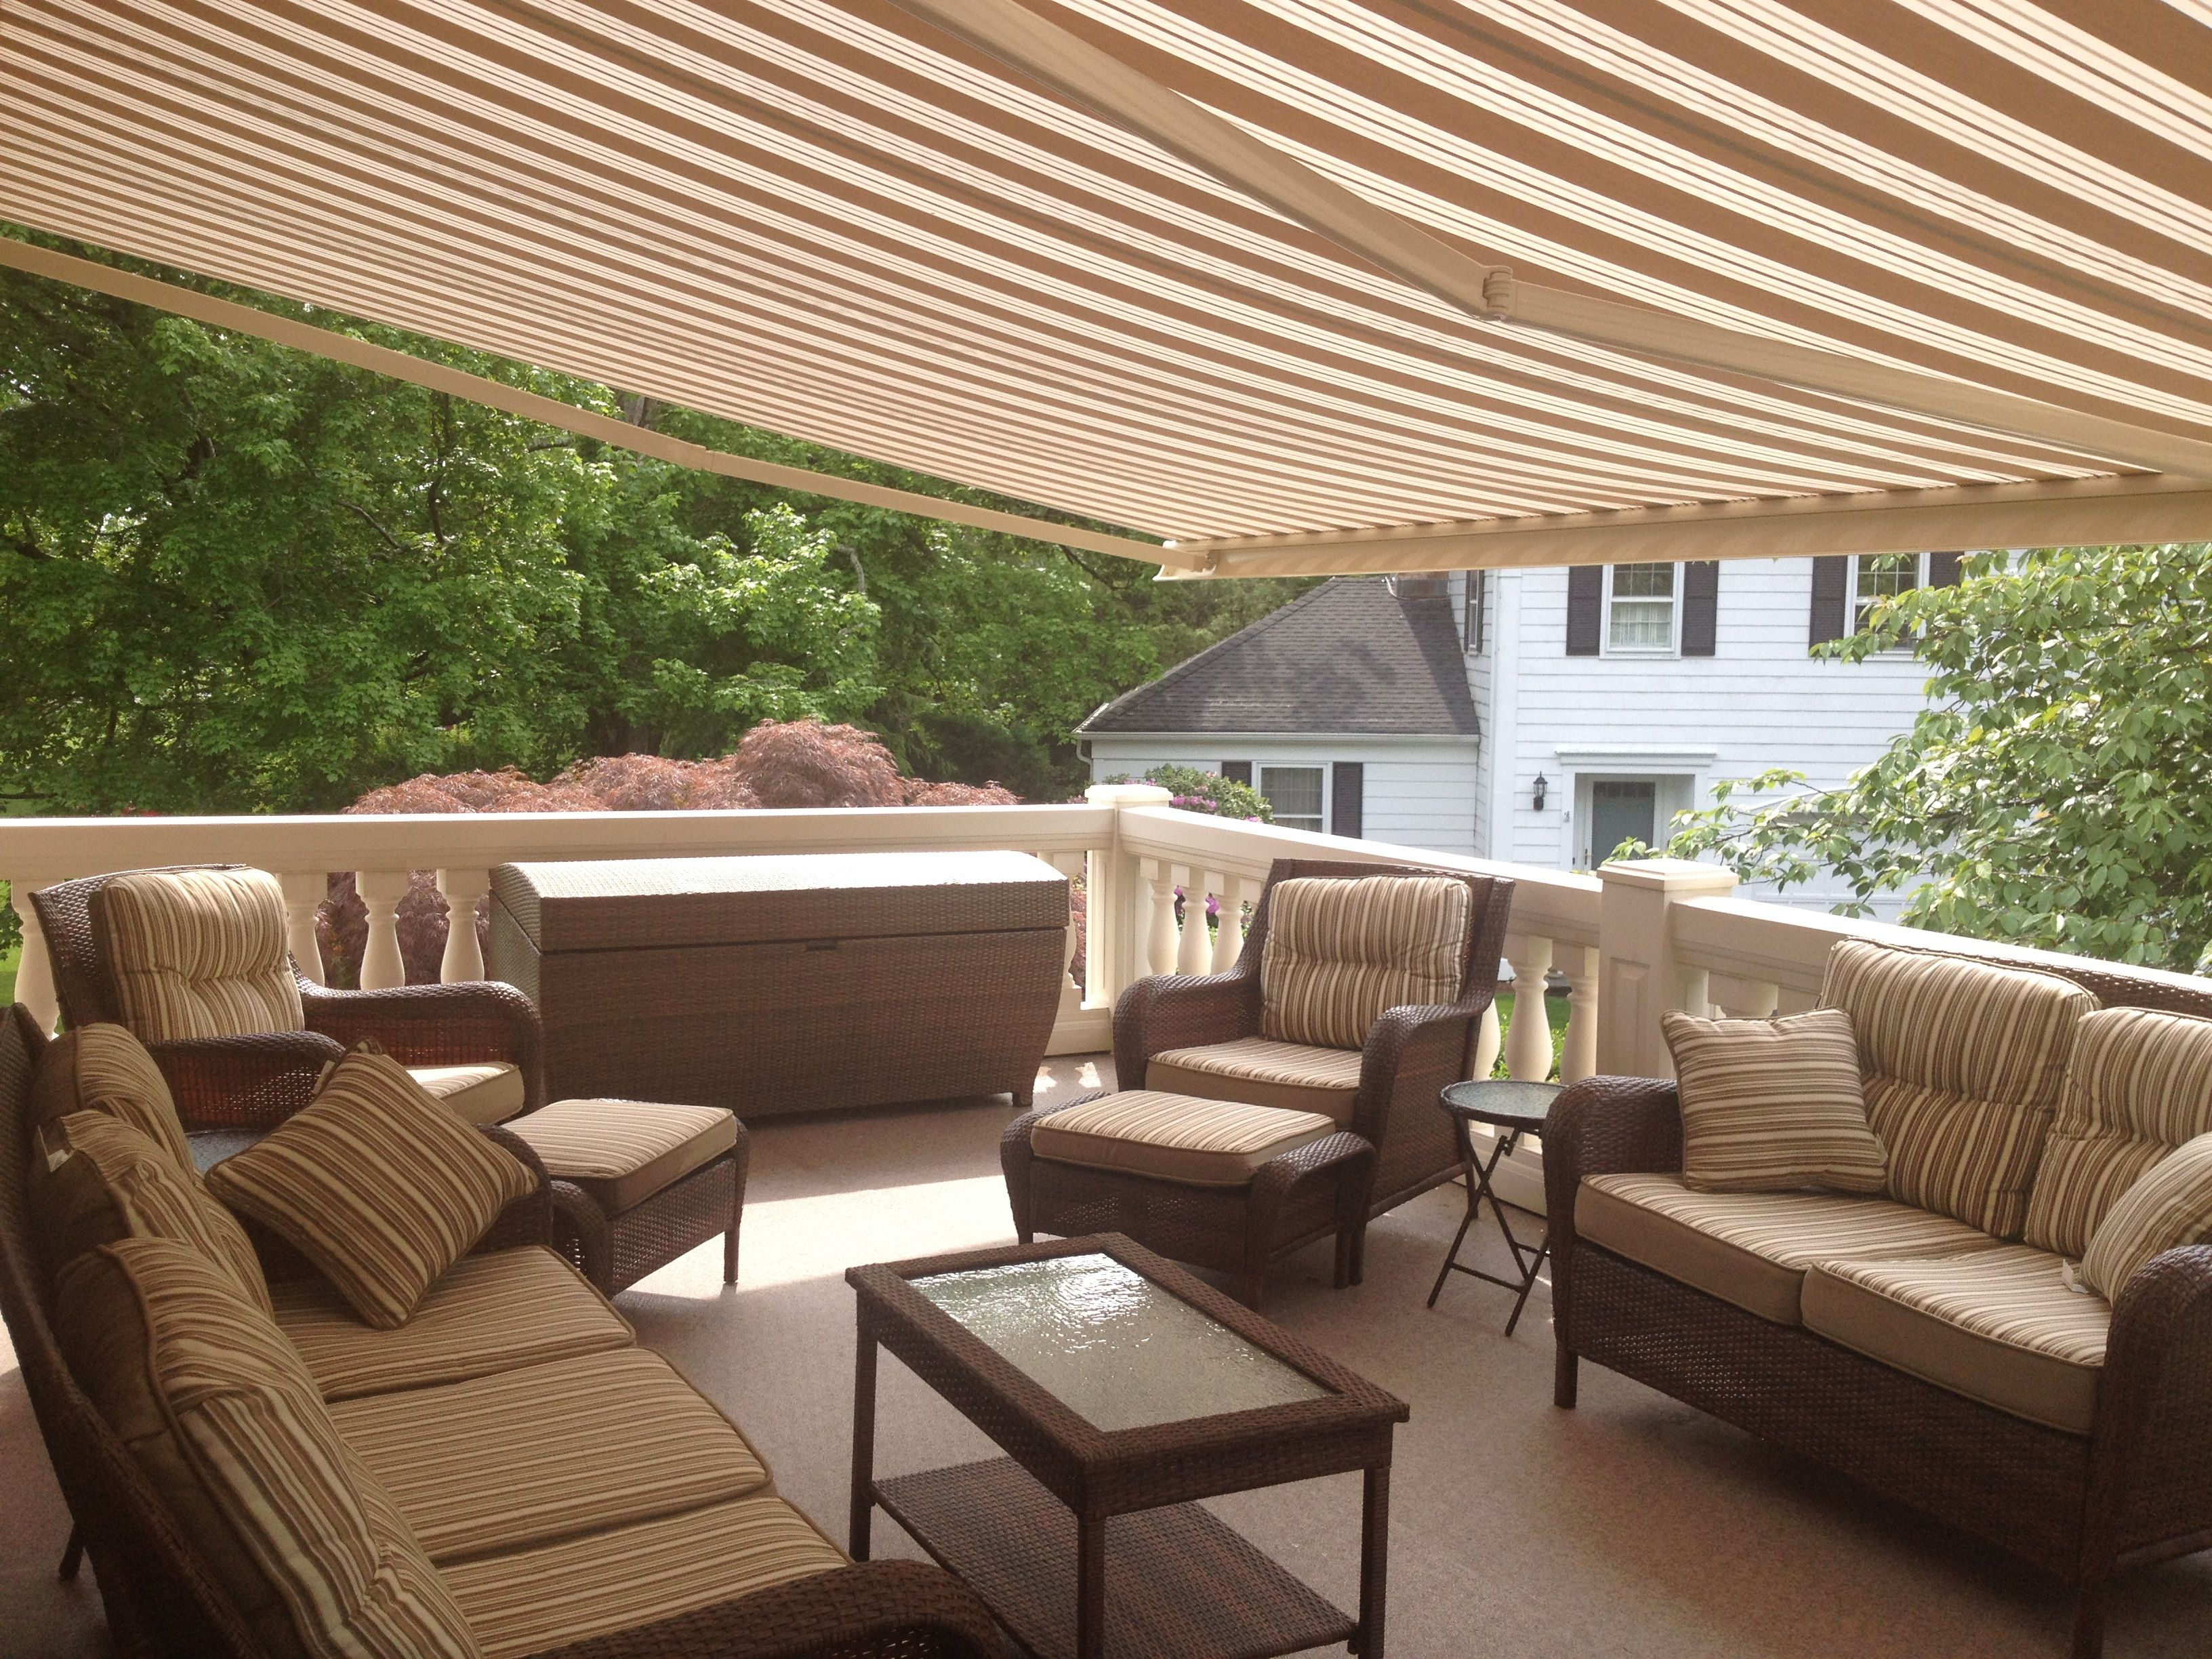 retractable costco awning home for chris ideas design sunsetter luxury motorized awnings deck patio of decks